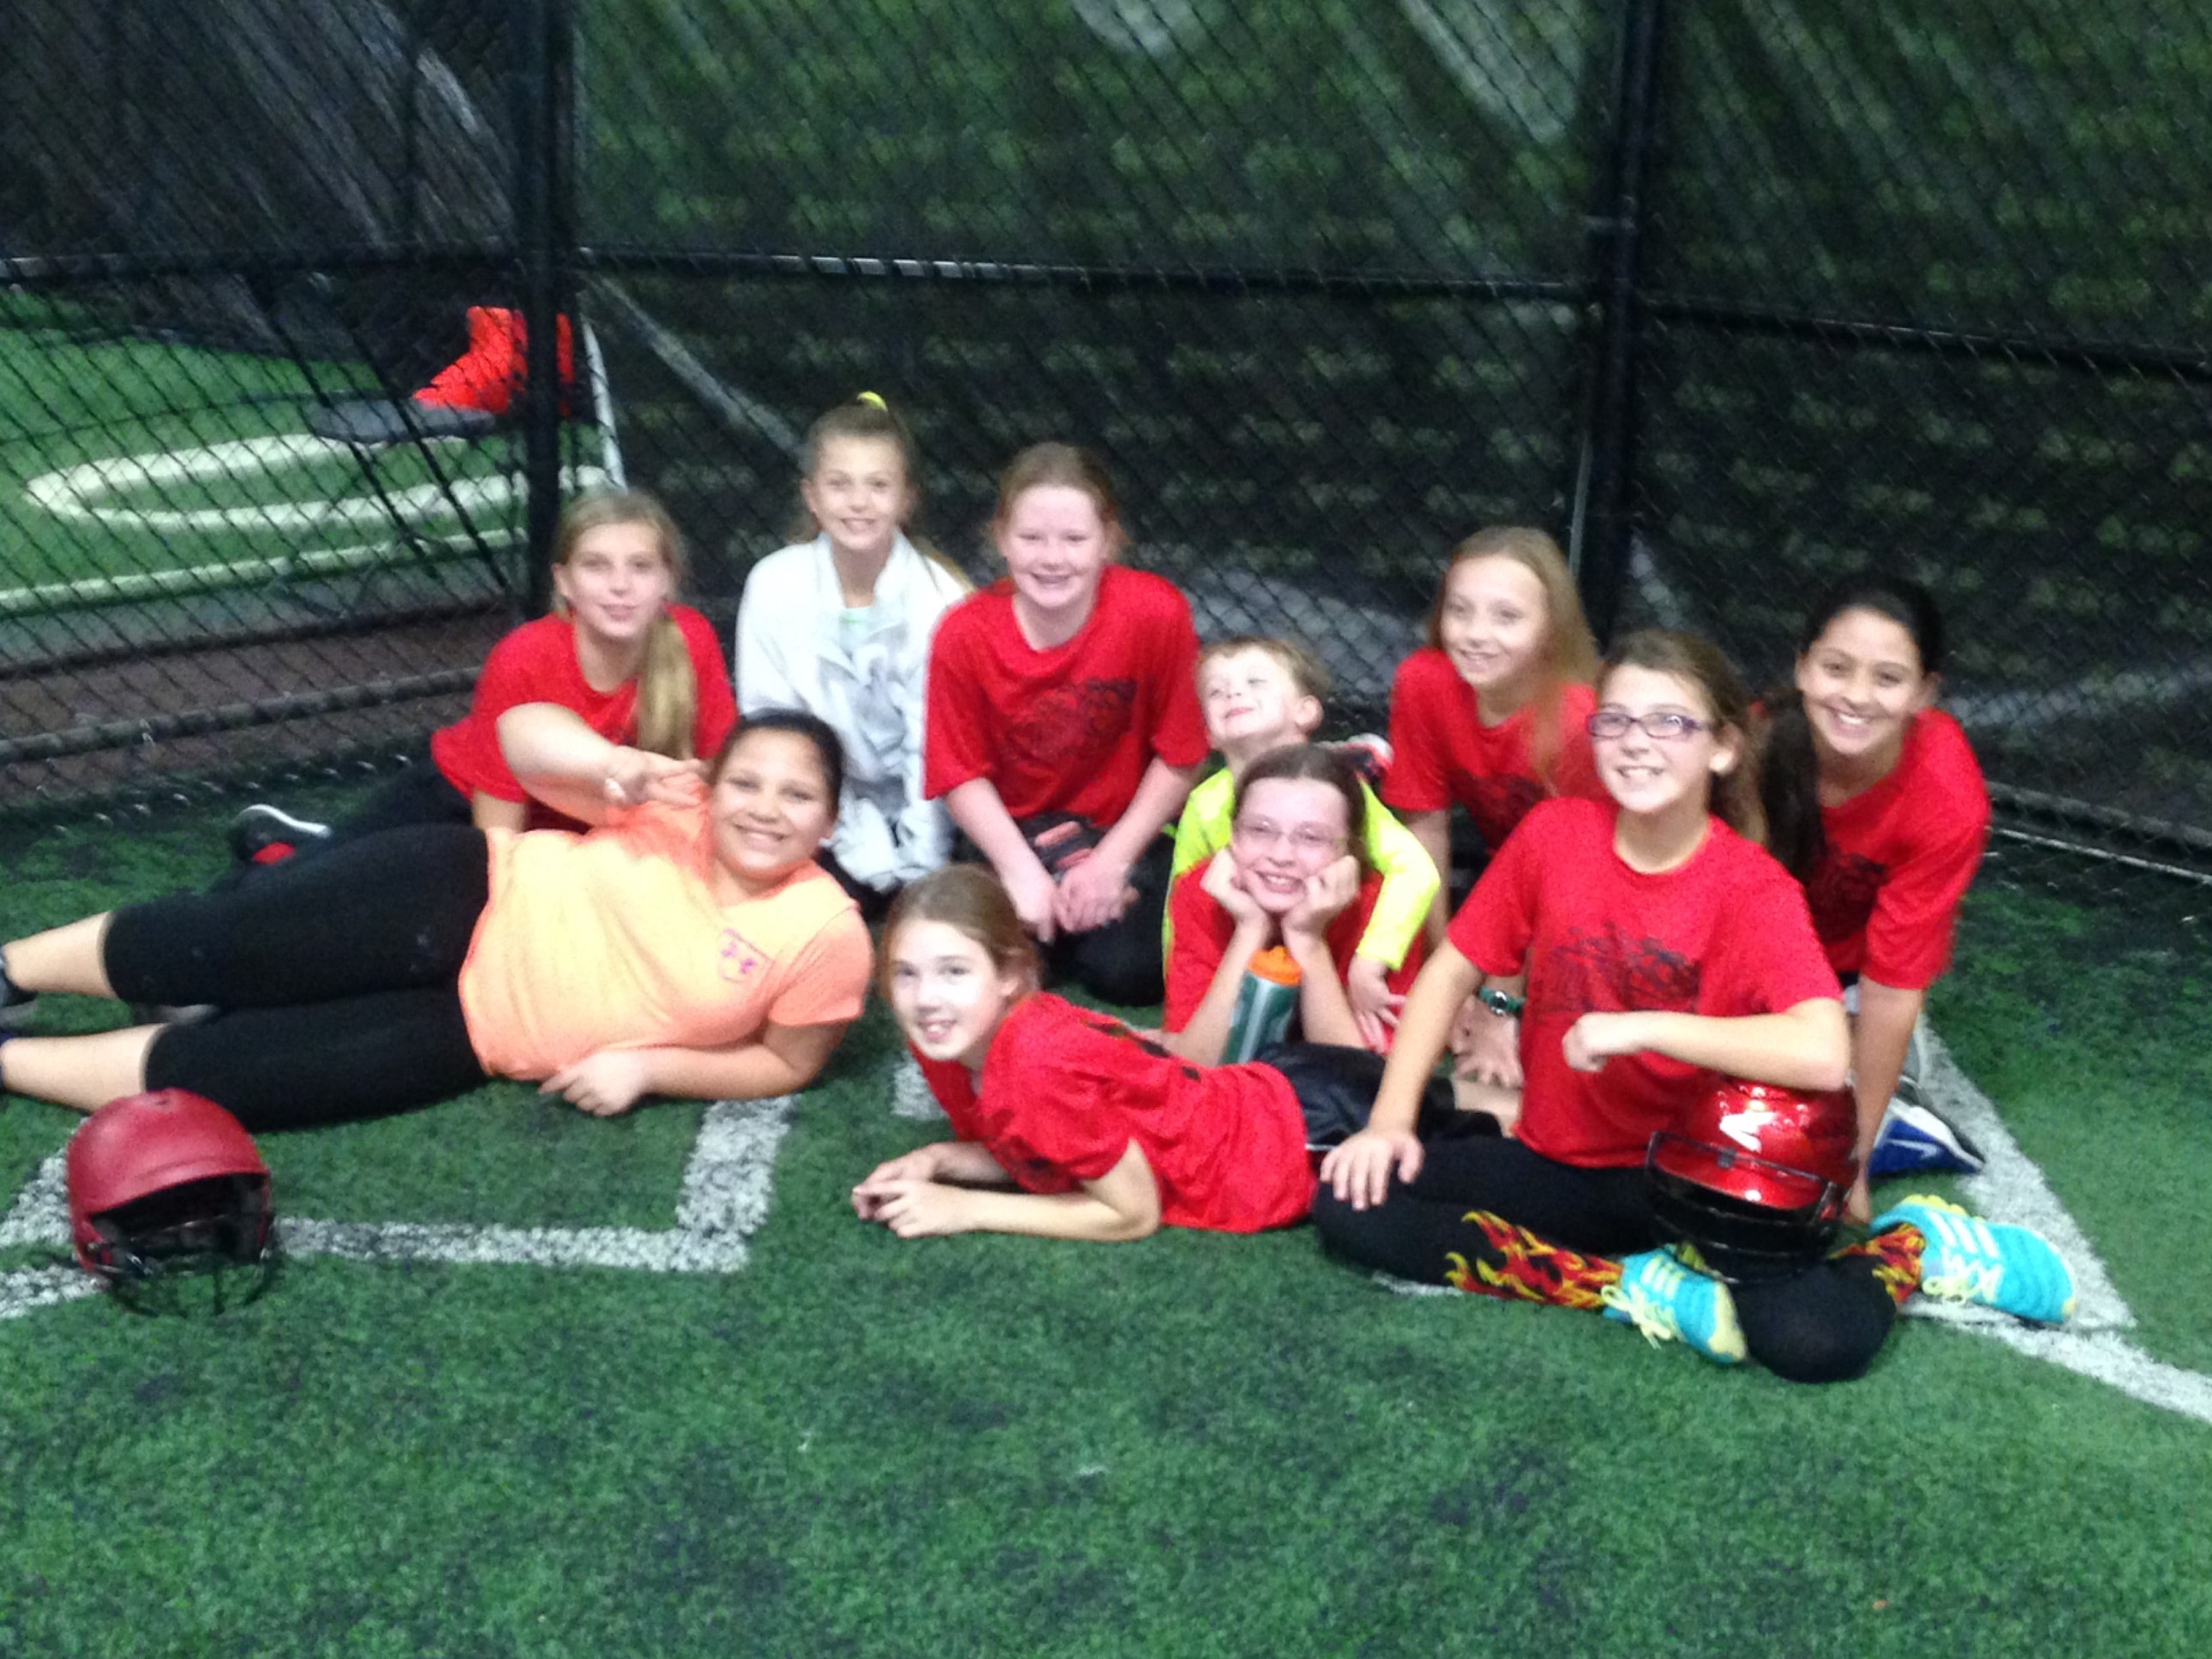 Lancaster Heat Softball- 12U Petroski